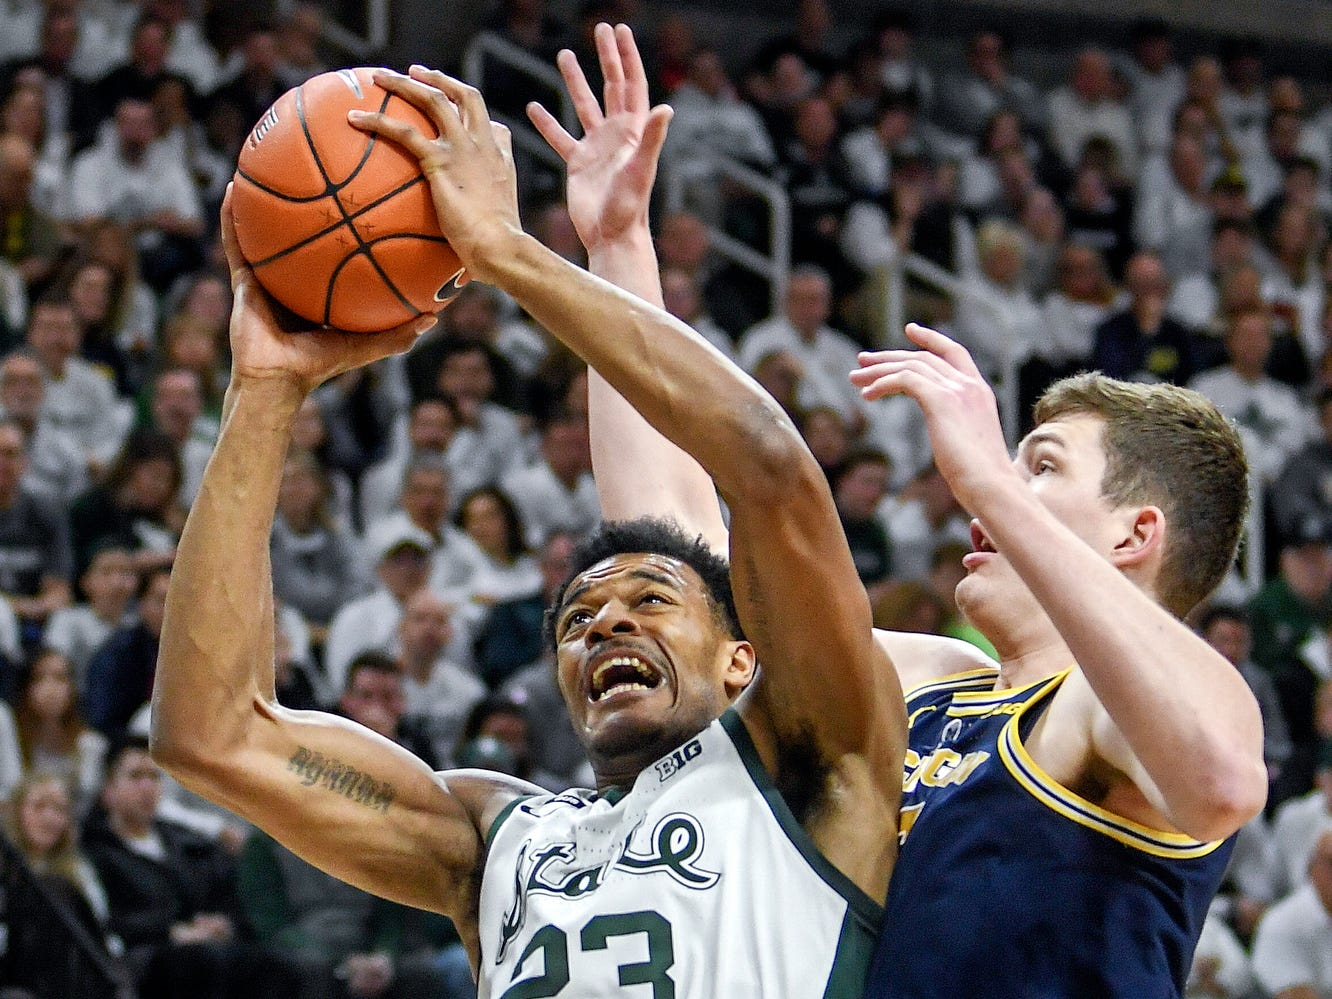 Michigan State's Xavier Tillman, left, is fouled by Michigan's Jon Teske while shooting during the first half on Saturday, March 9, 2019, at the Breslin Center in East Lansing.